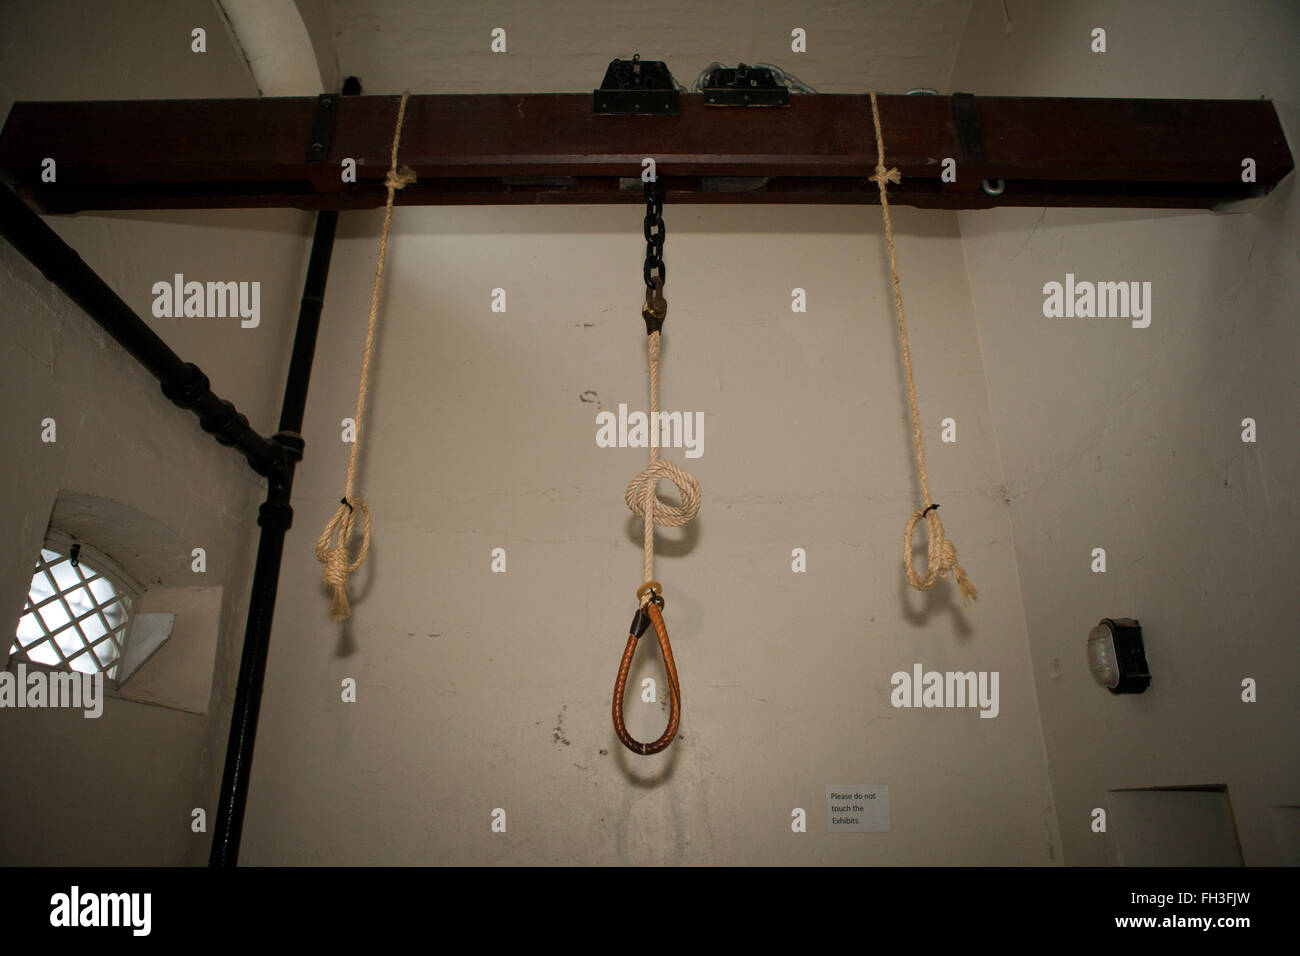 Belfast, UK. 21st February 2016. Hangmans Noose dangles from the original wooden beam in the execution room of the - Stock Image